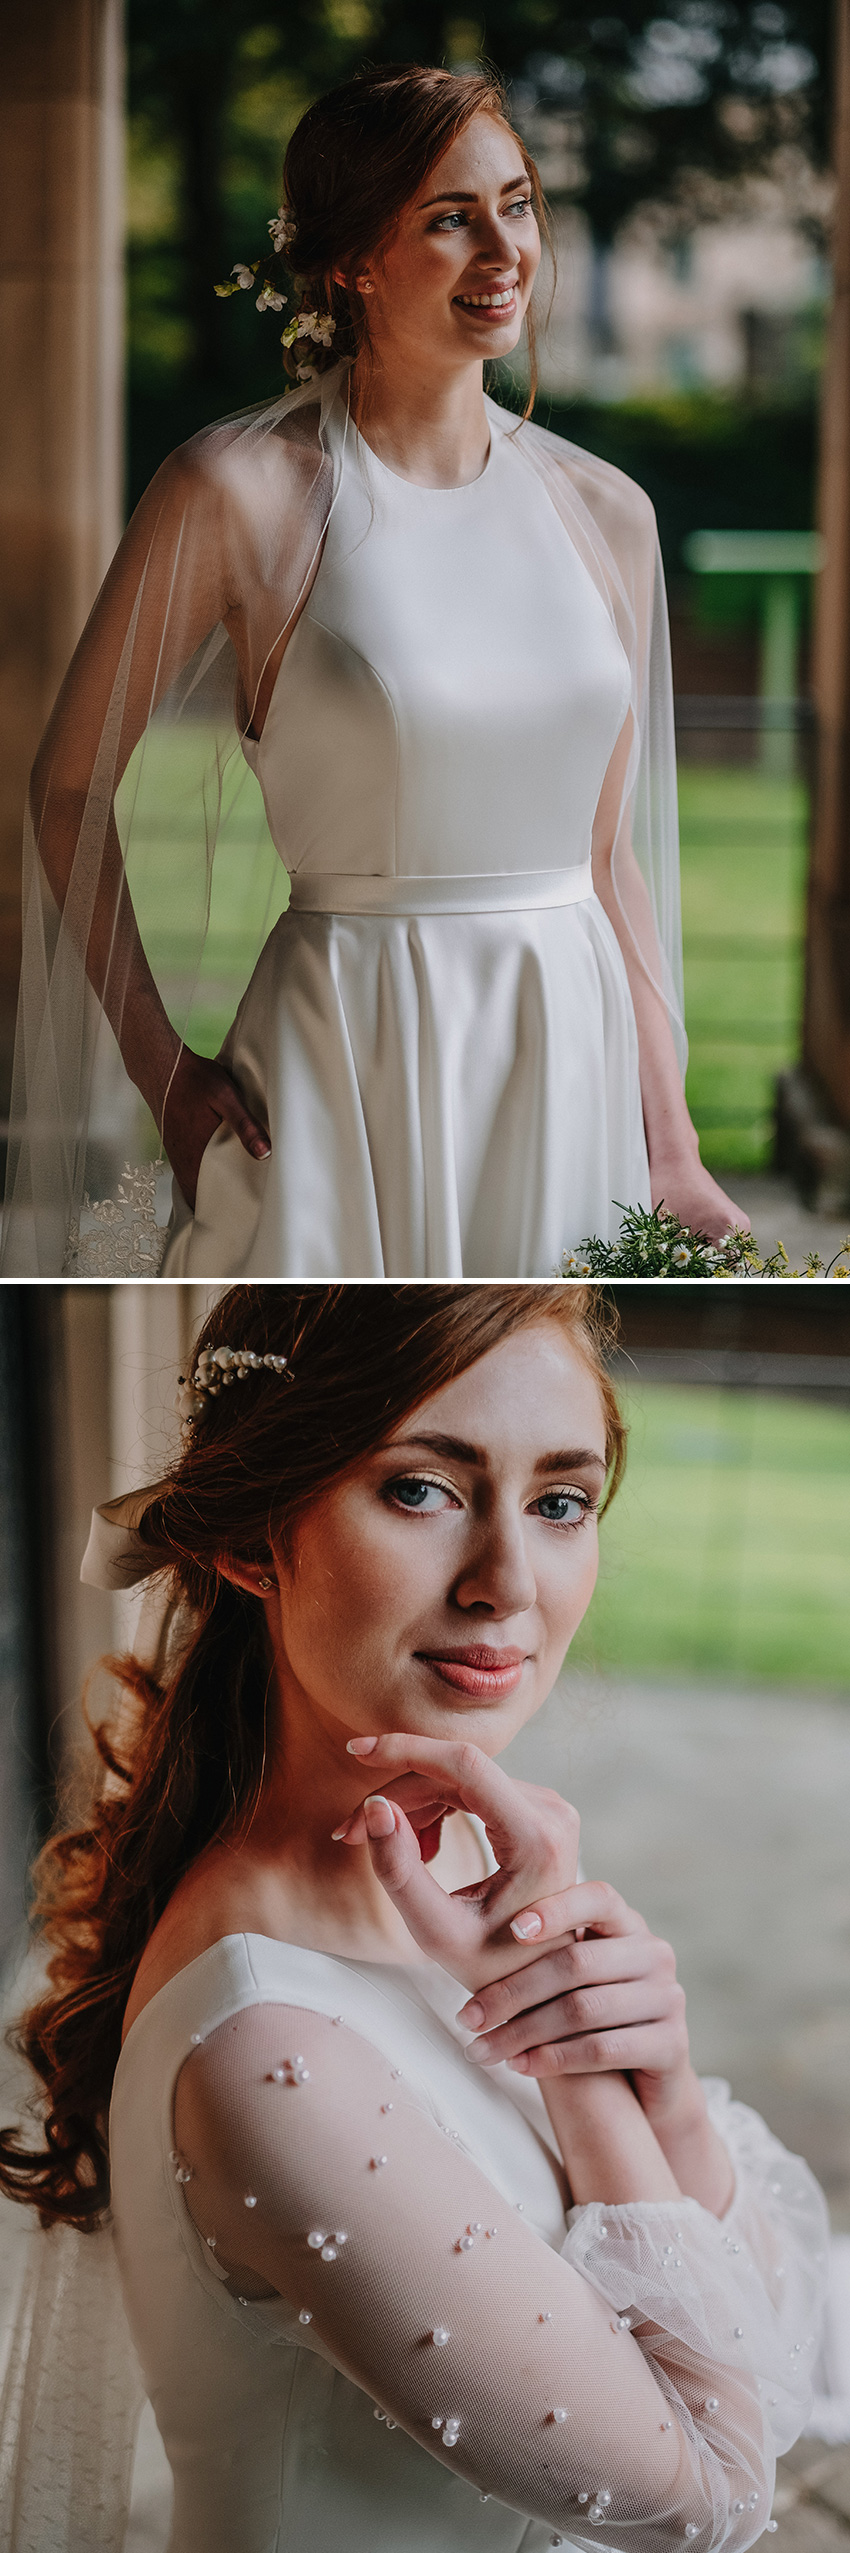 Bridal beauty inspiration for the modern bride featured in Perfect Wedding Magazine